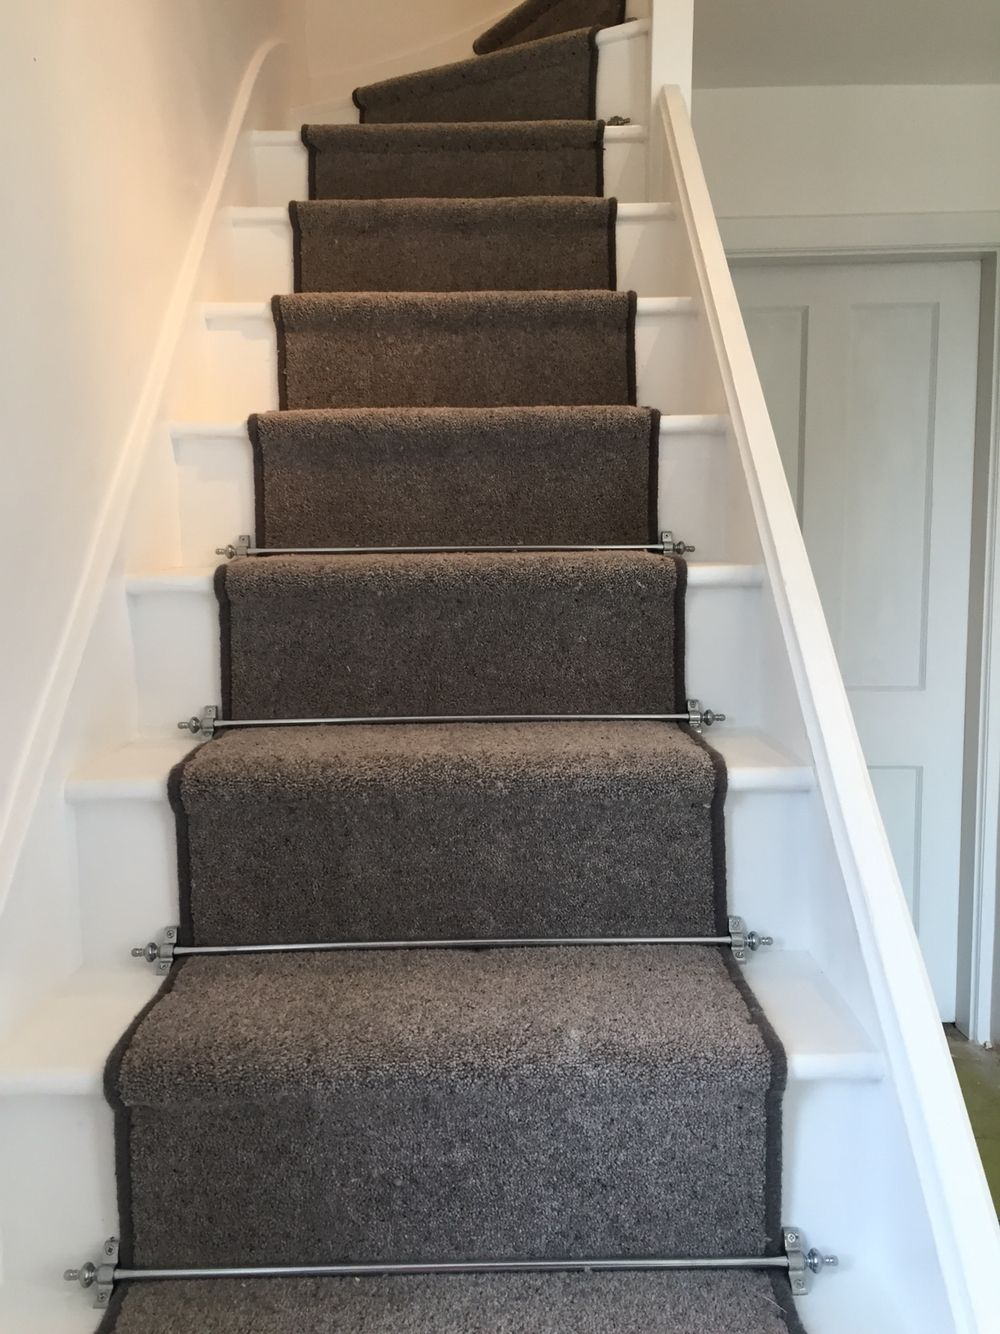 Grey Carpet Runner And Chrome Carpet Rods On White Painted